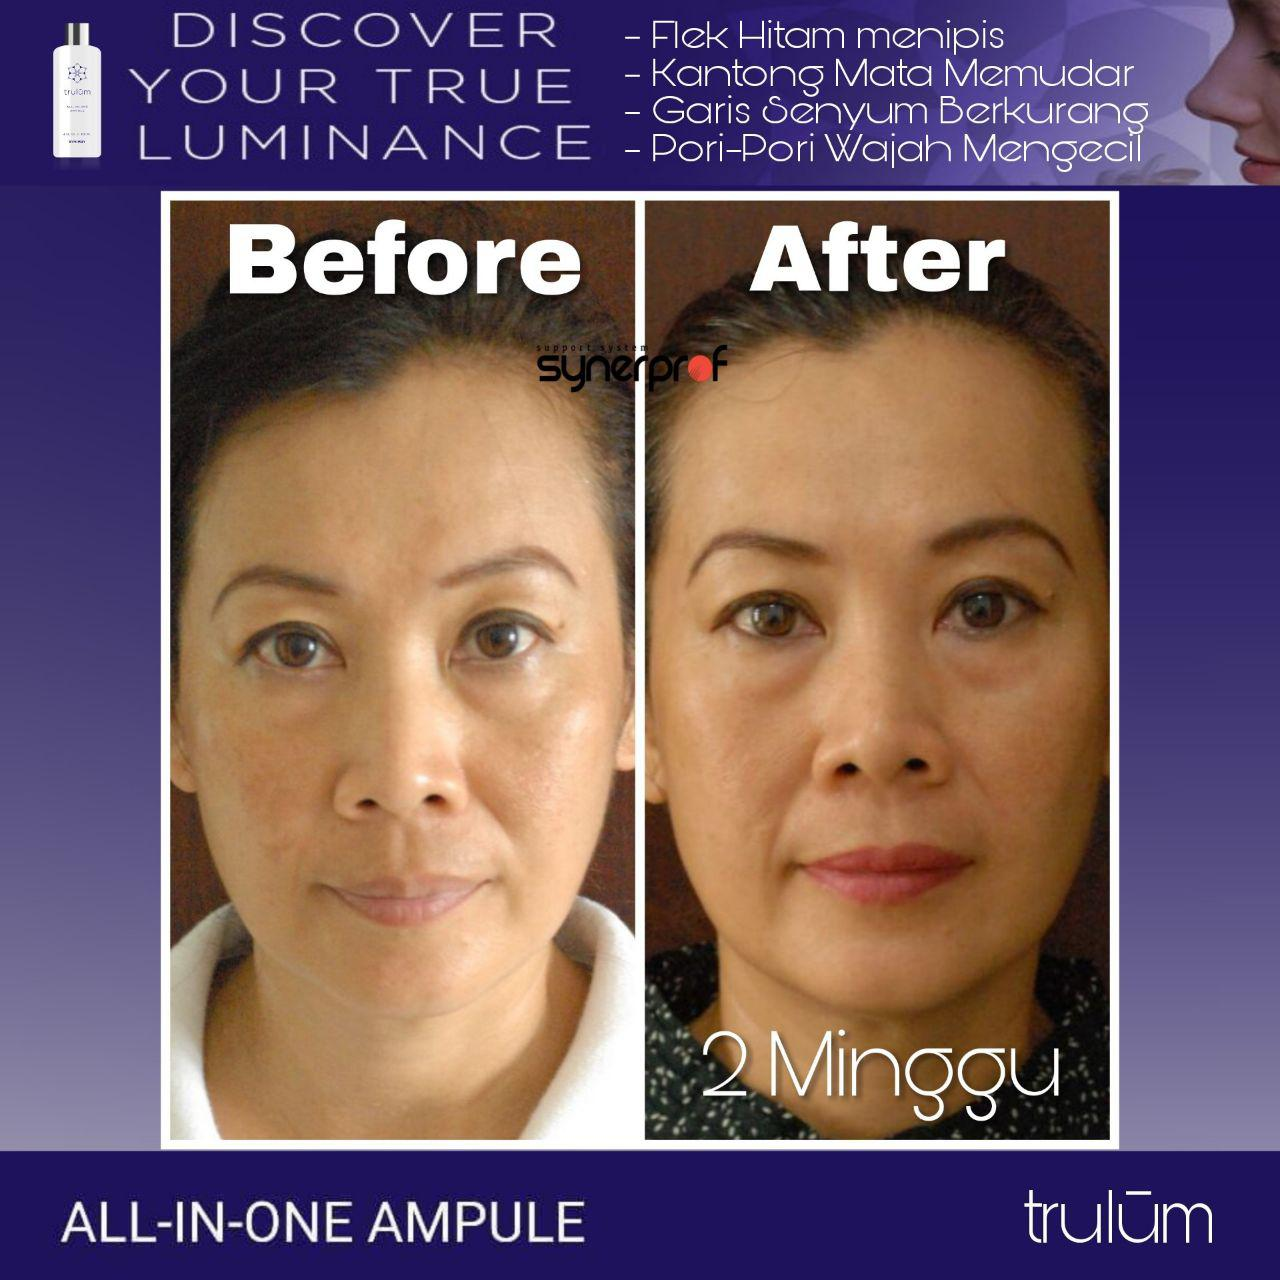 Jual Trulum All In One Ampoule Di Kadipaten WA: 08112338376